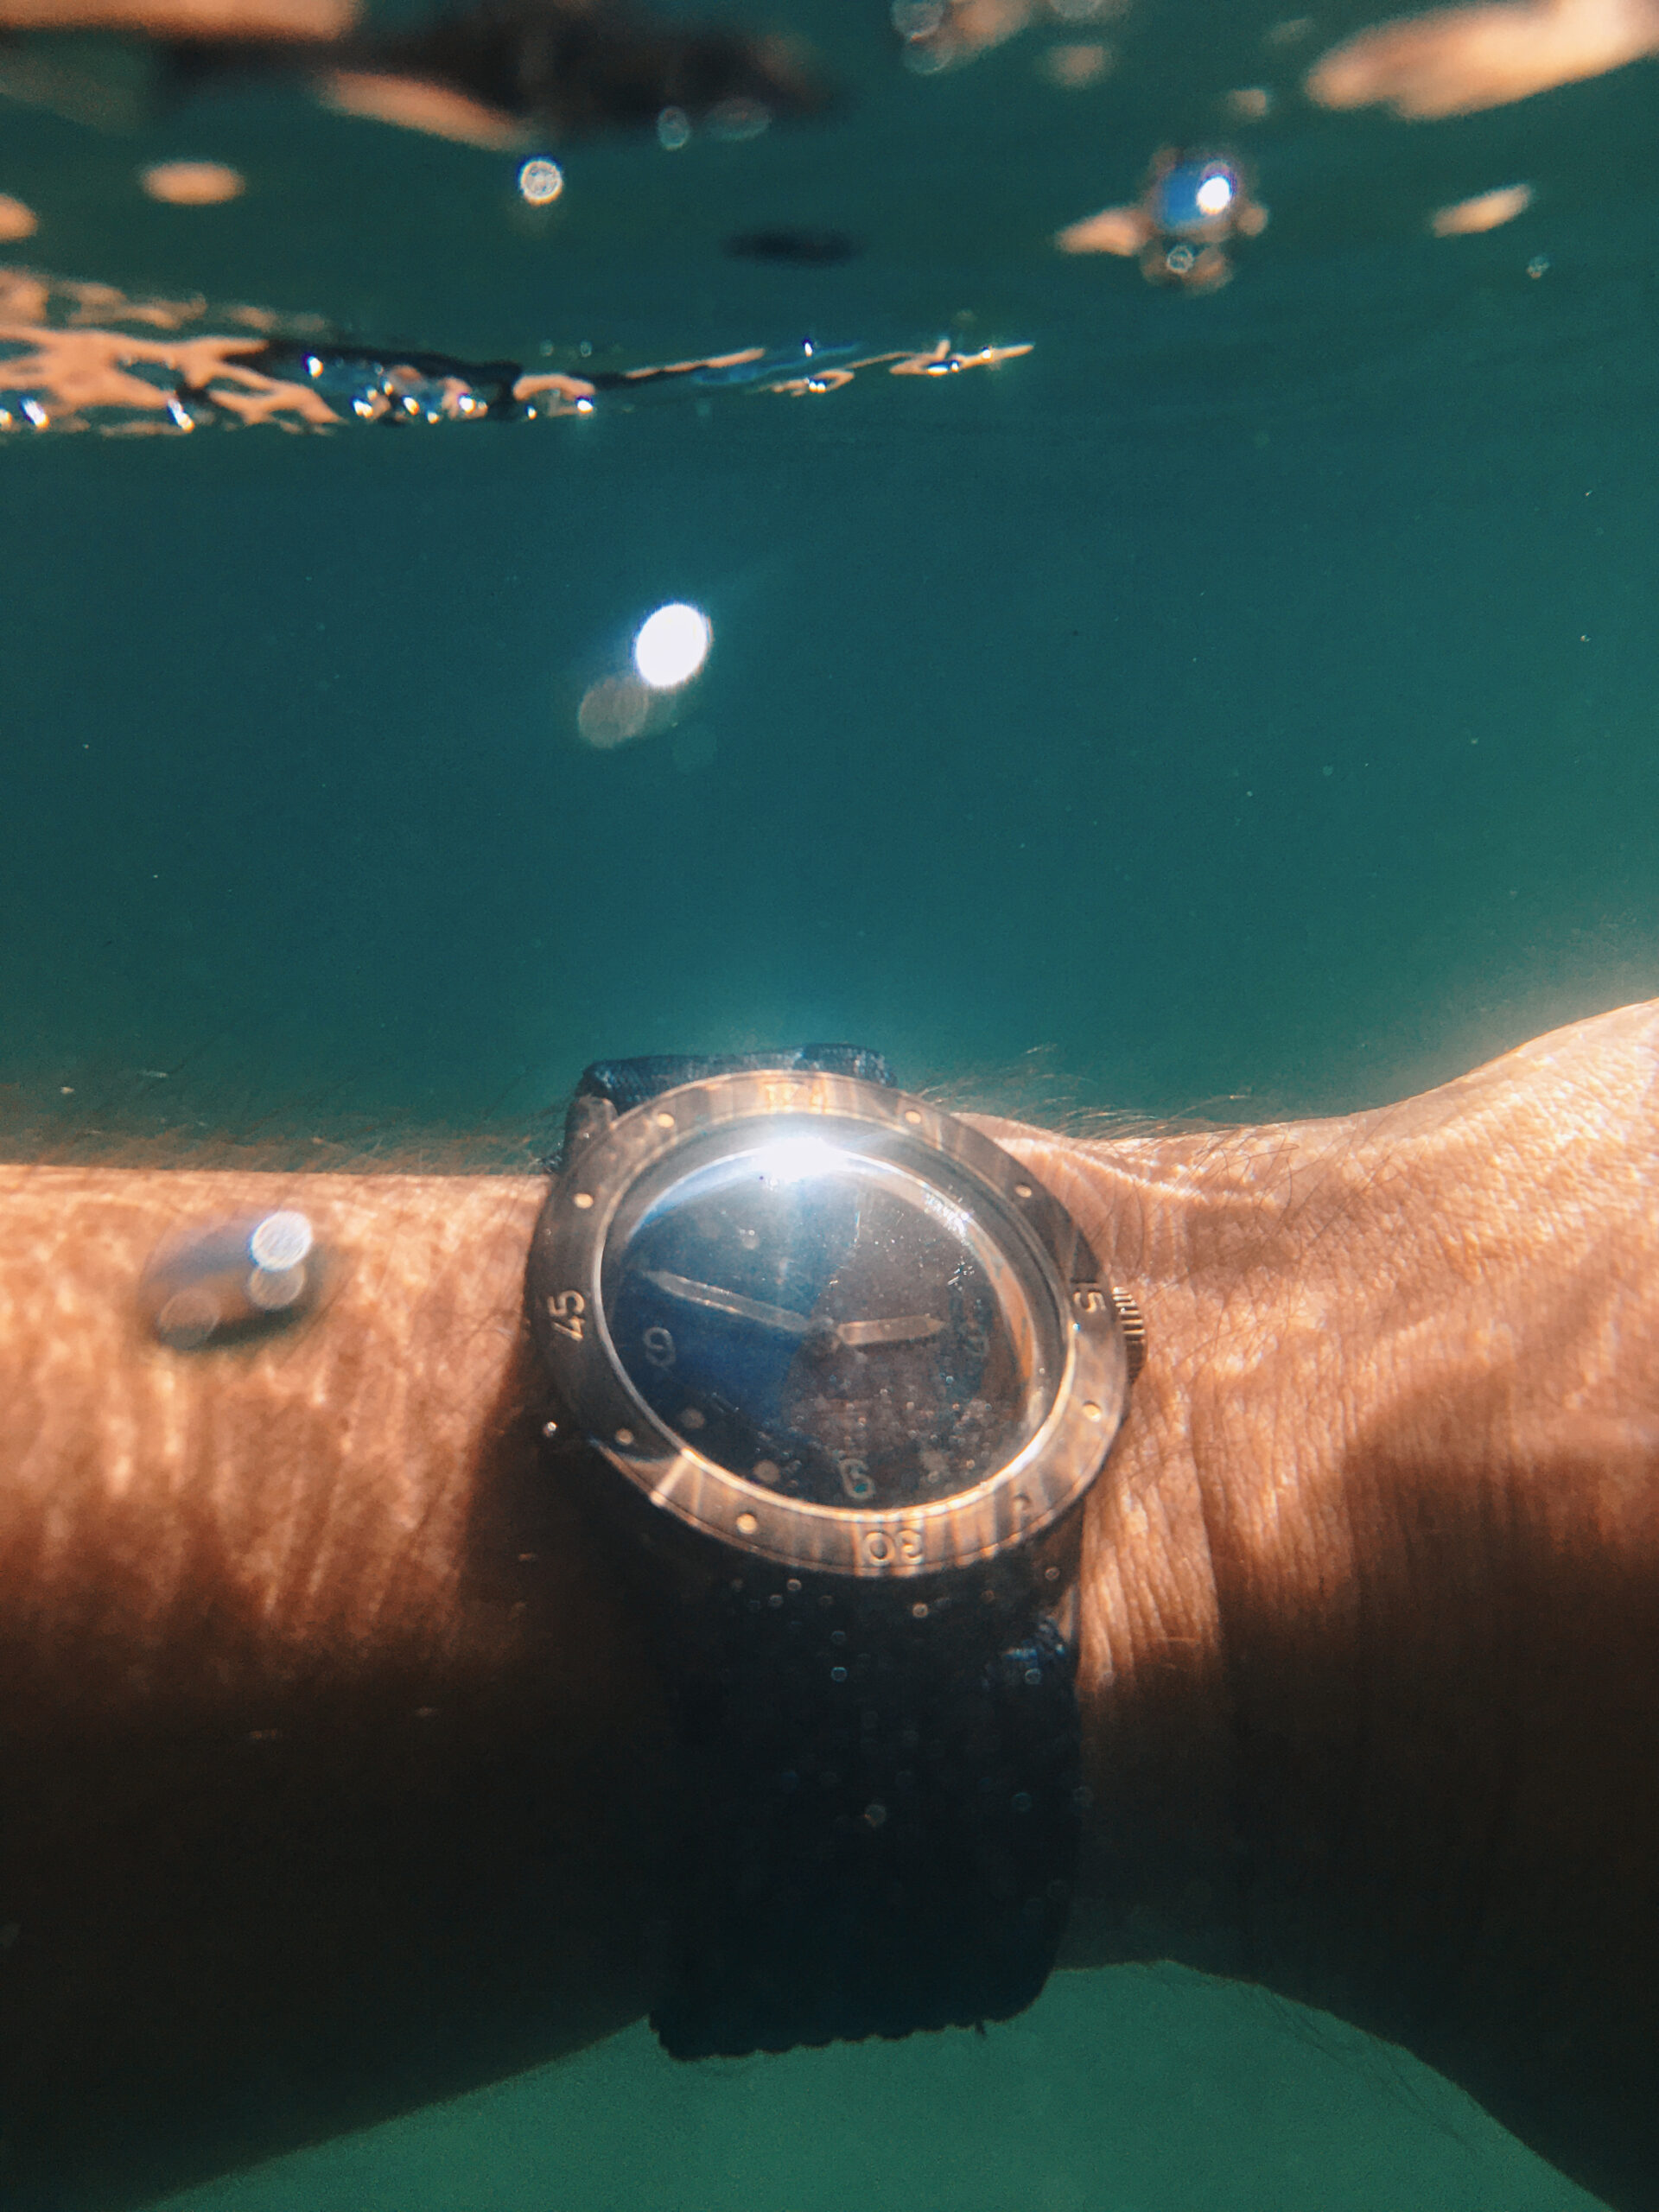 Baltic Aquascaphe Bronze on wrist underwater shot, with two bubbles in foreground and the surface of the water close above